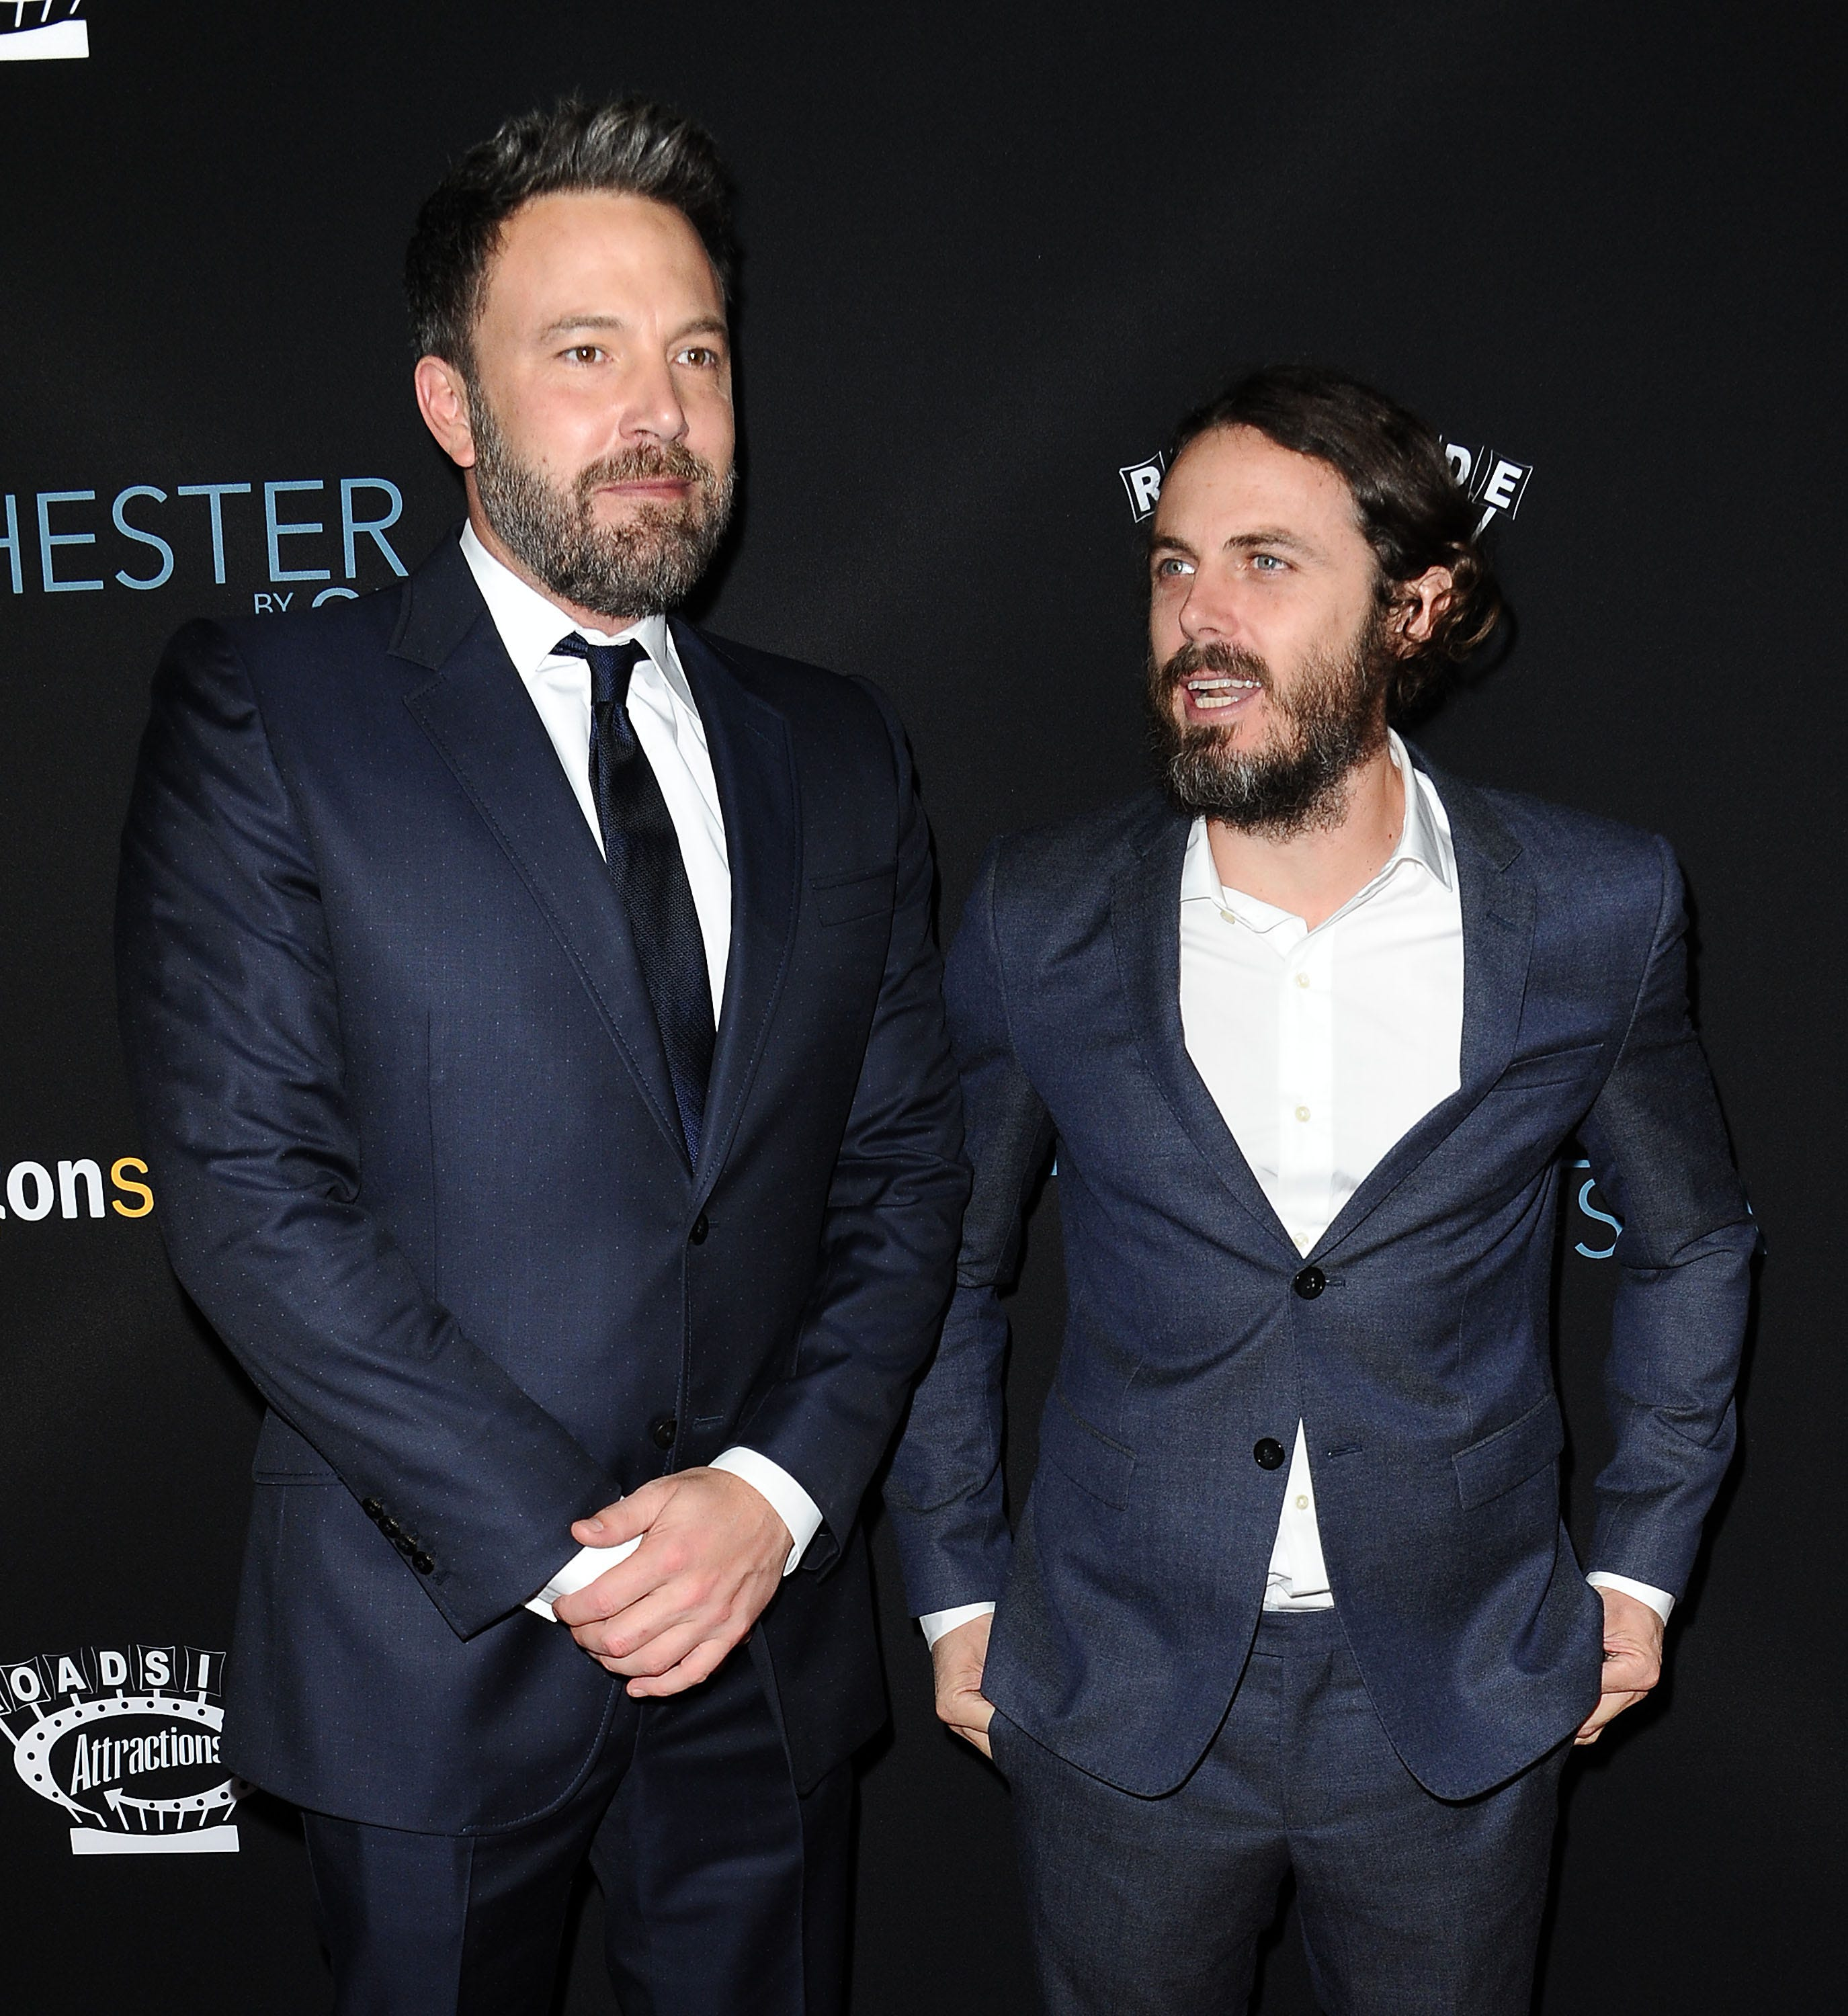 Casey Affleck supports 'brave' brother Ben's return to rehab